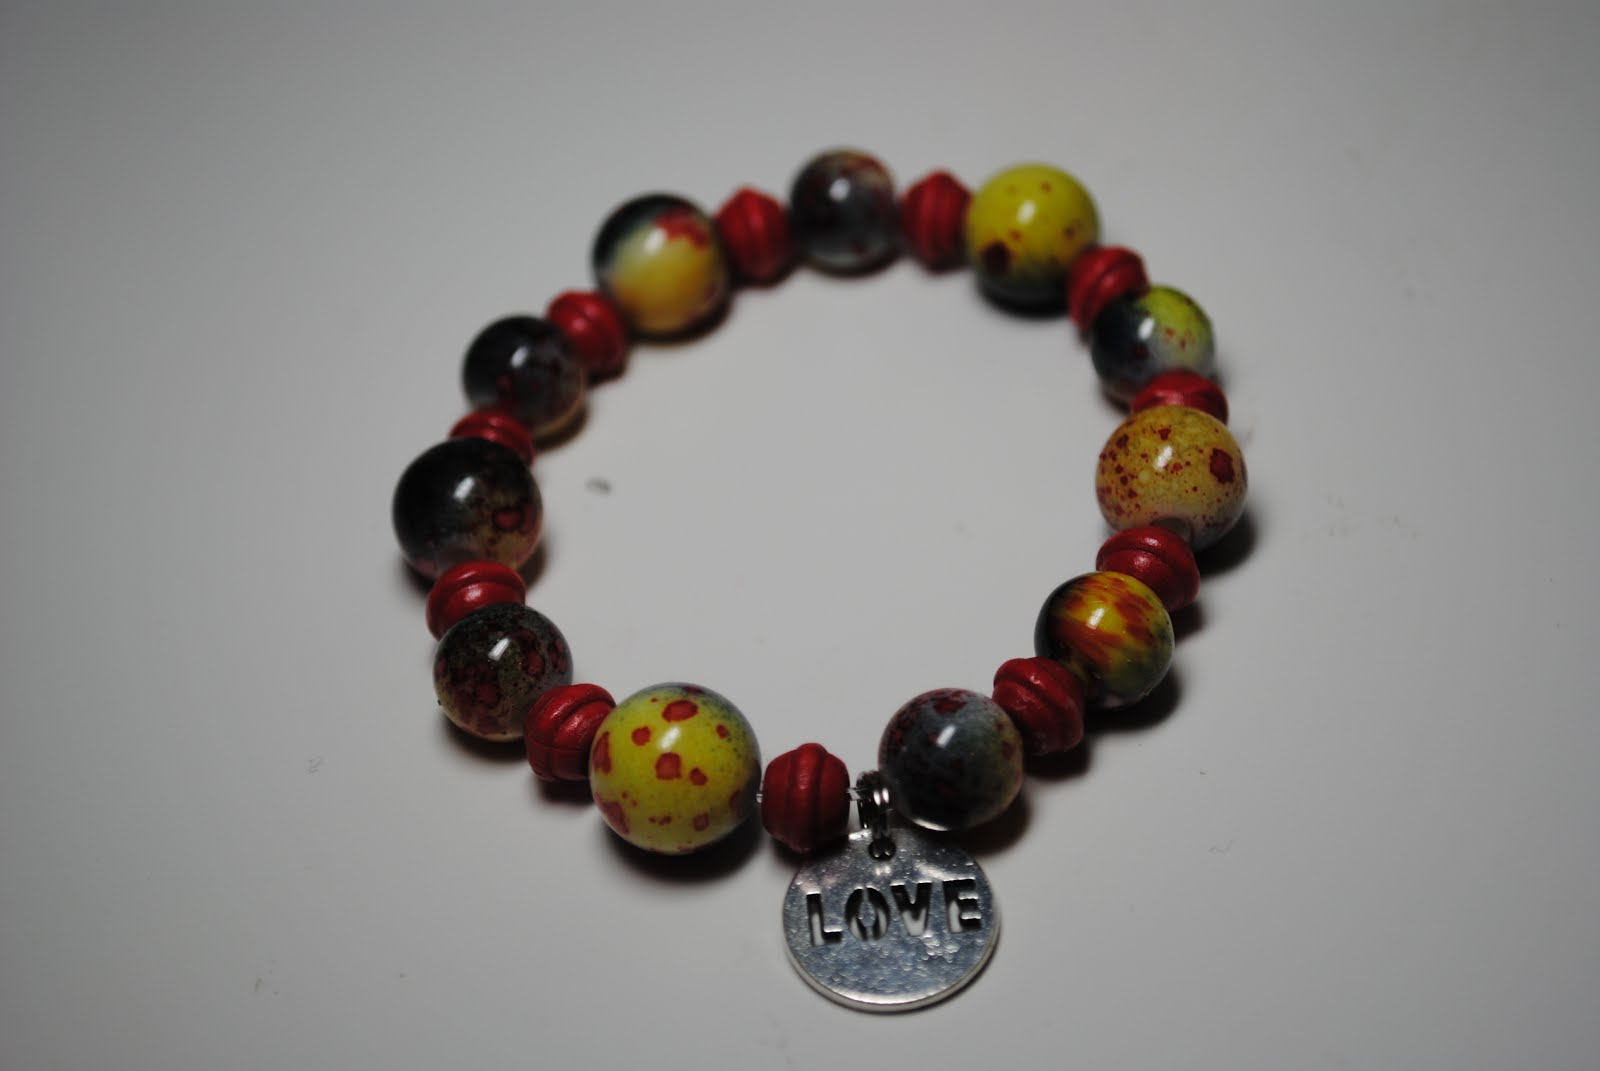 Around the World Bracelet with Love Charm - Yellow/Red $12